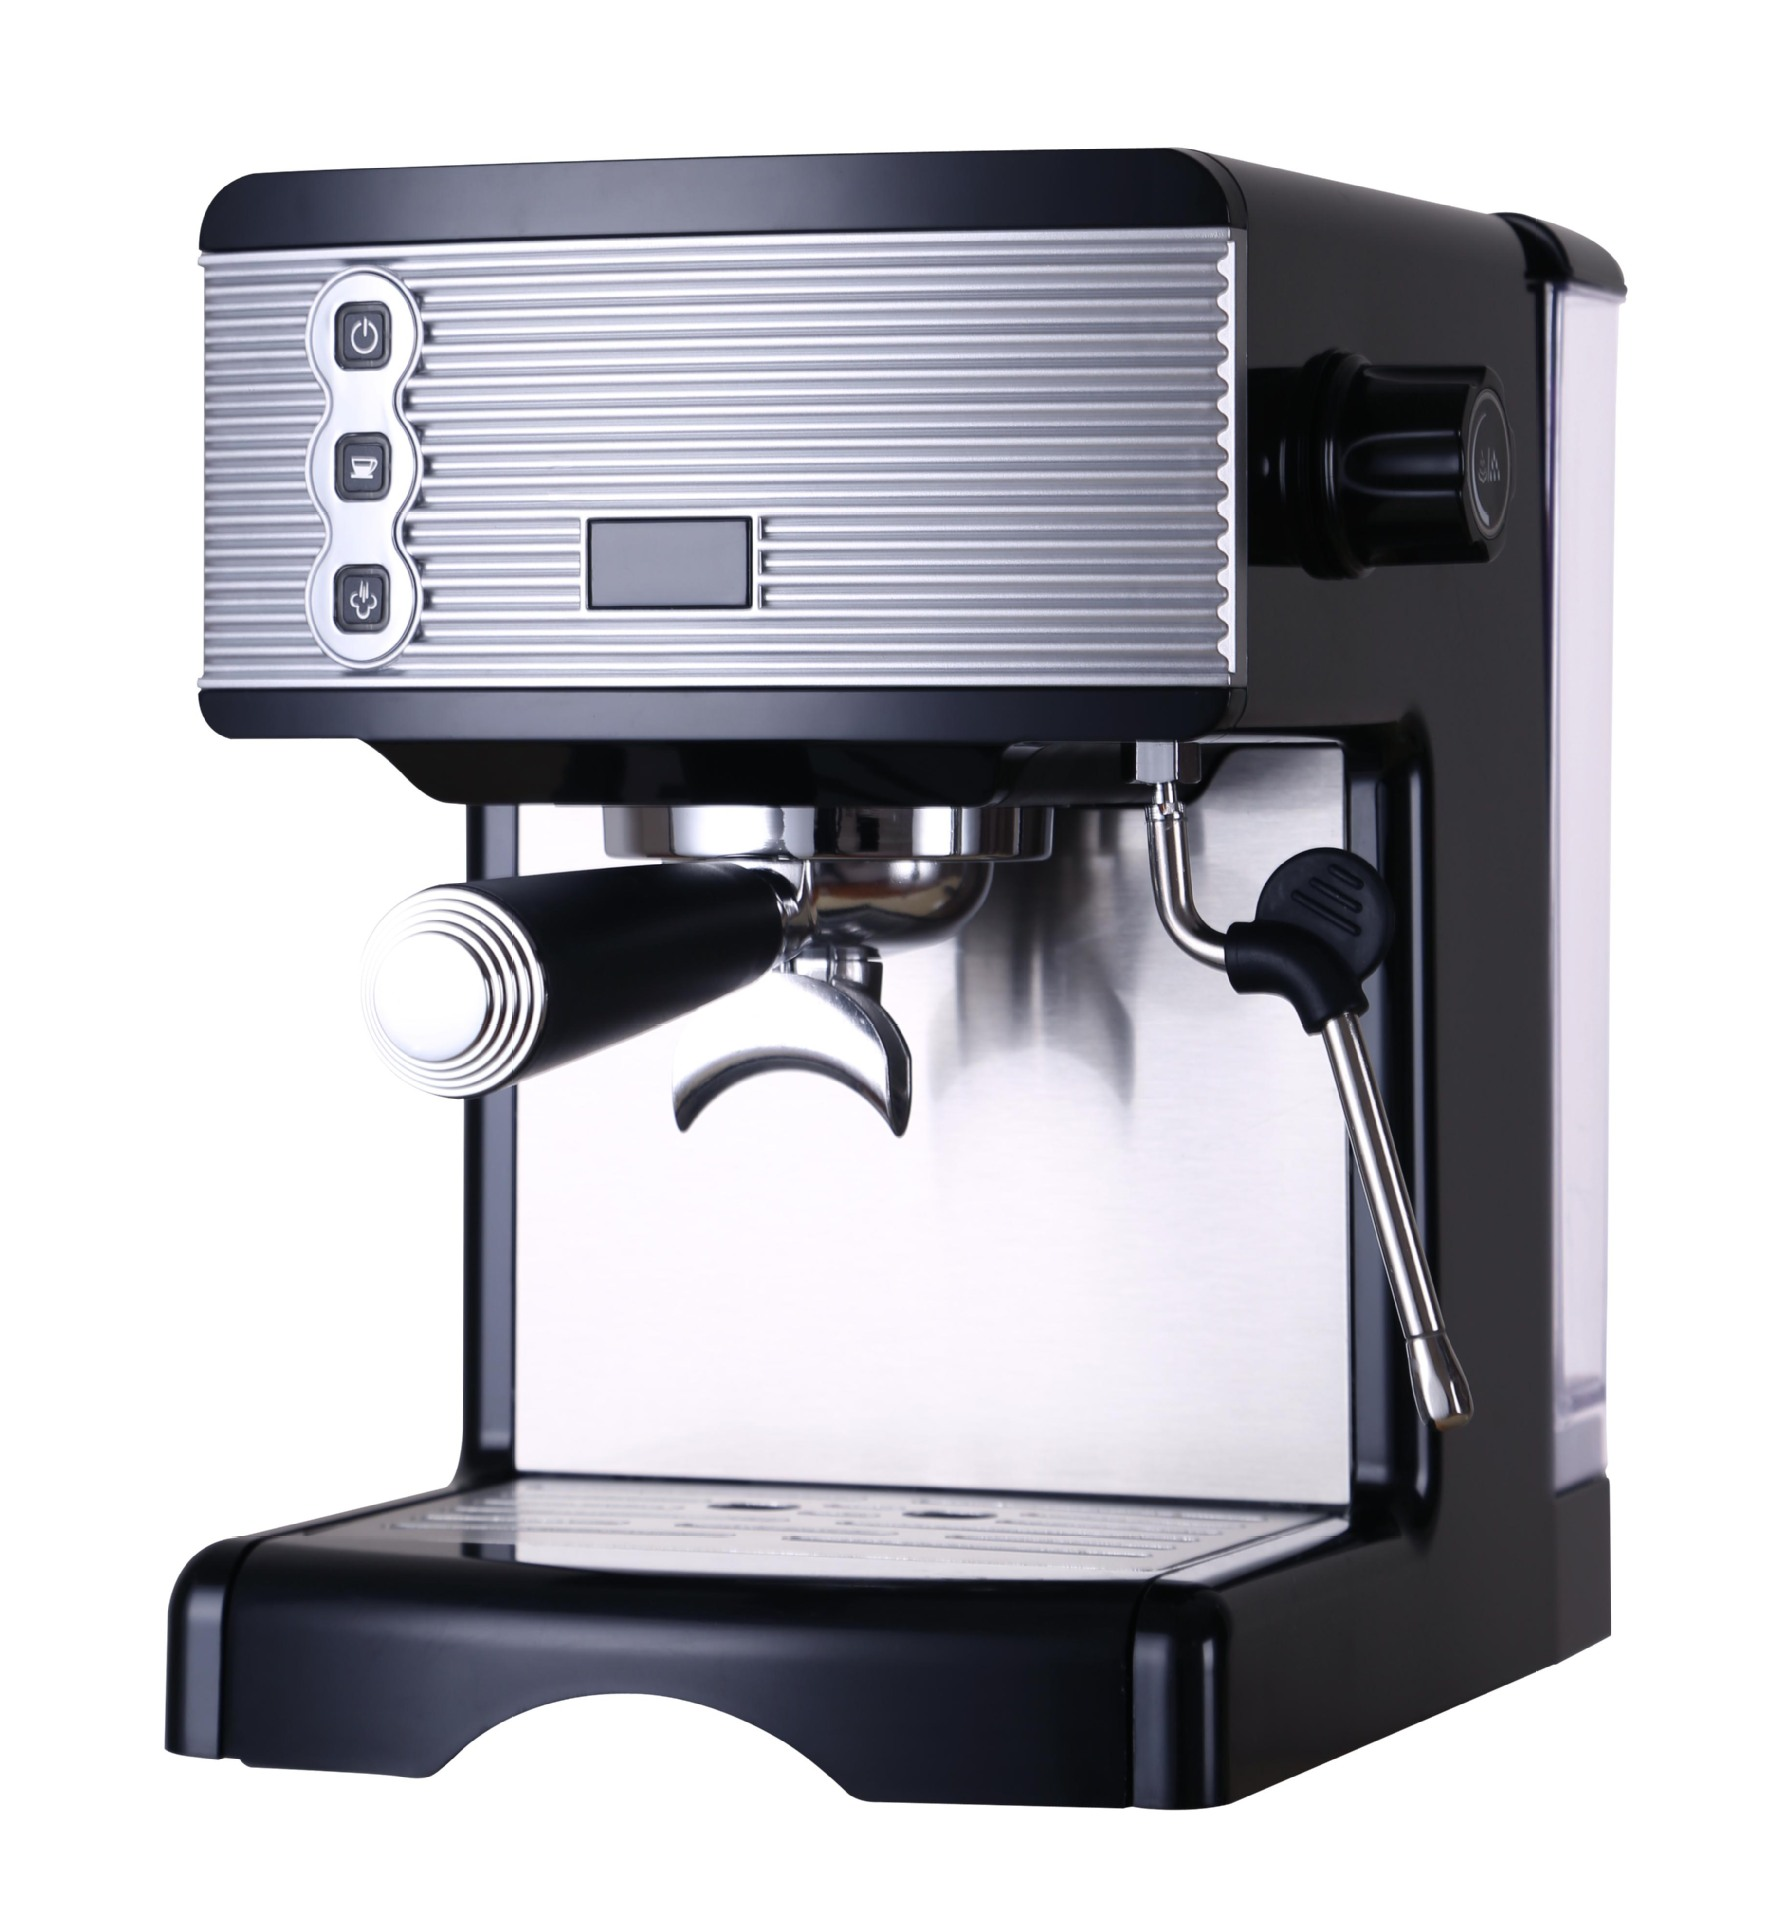 220v/1.7L Semi-automatic Household Italian Coffee Machine 3